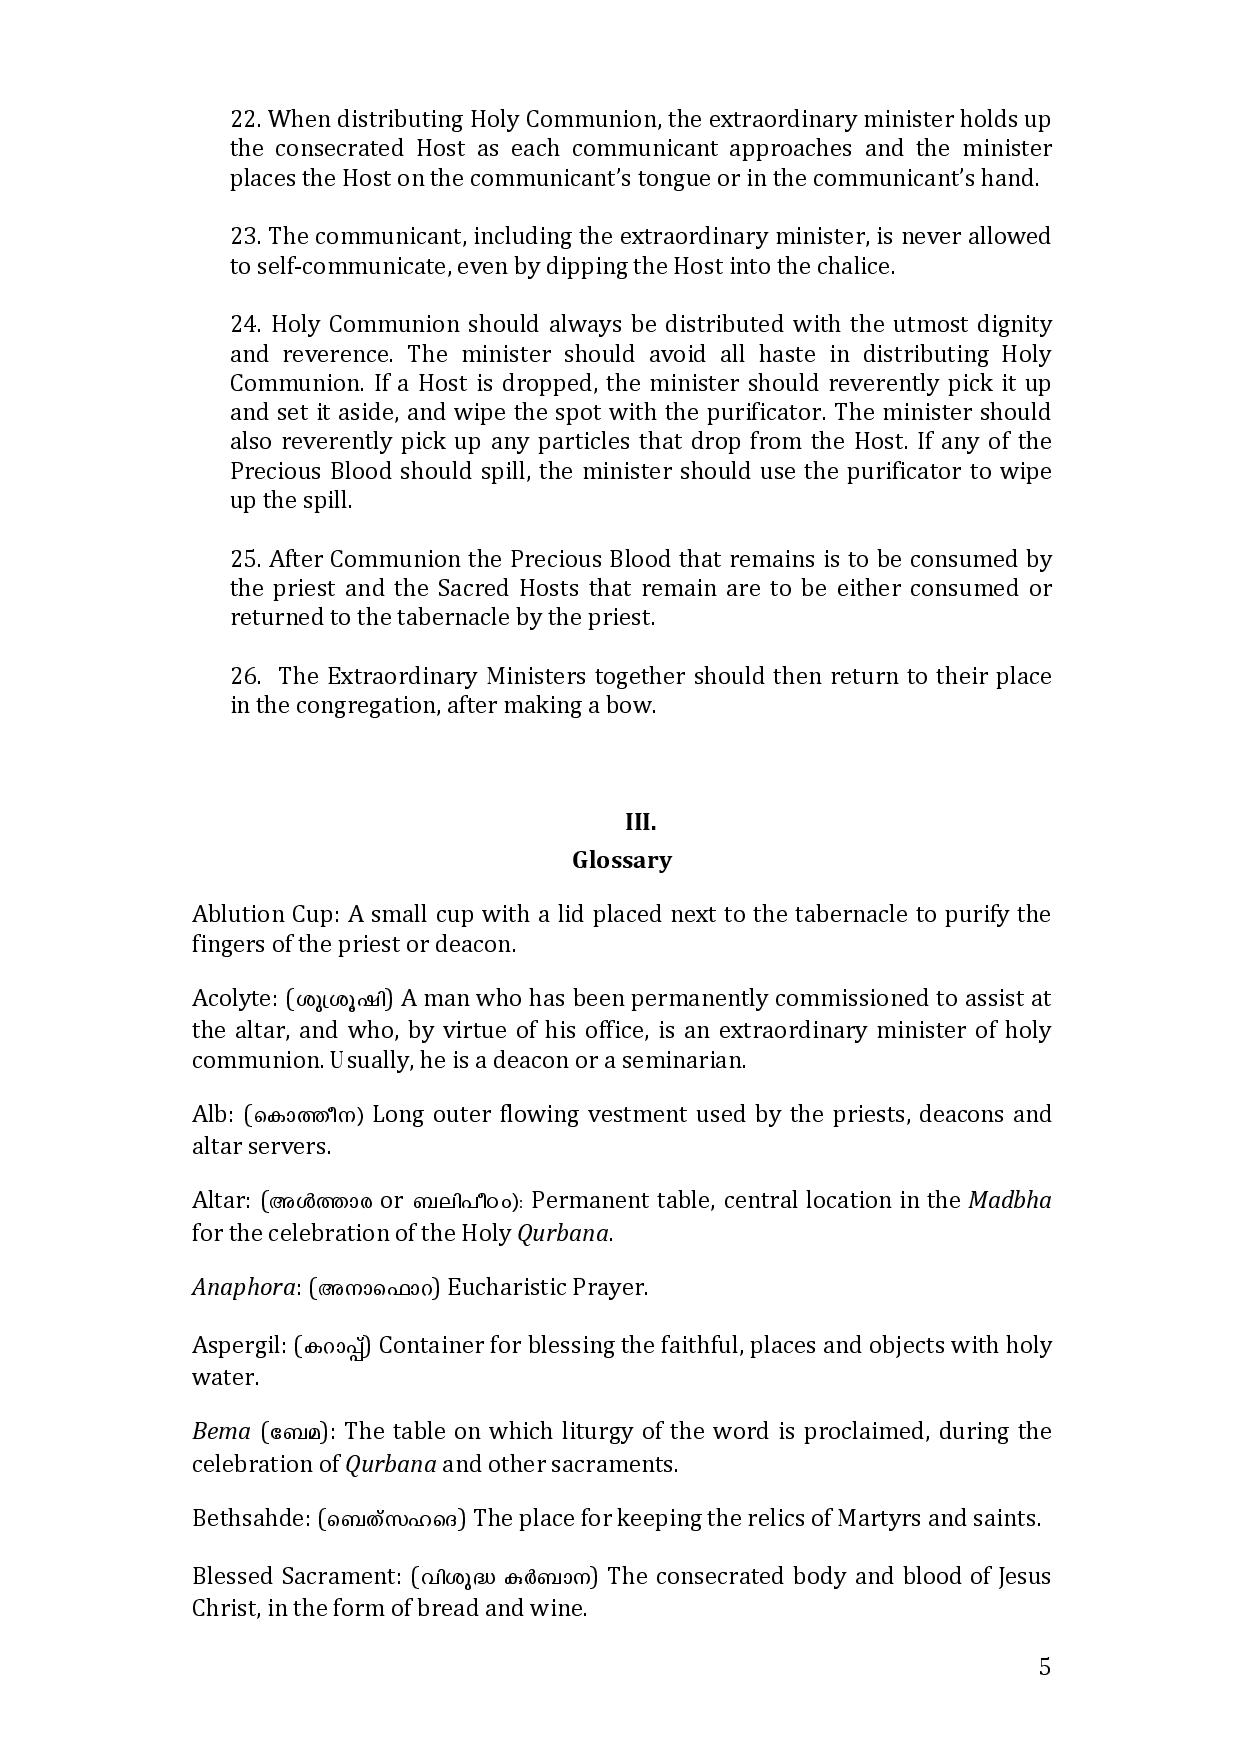 extraordinary-holy-communion-syro-malabar-eparchy-of-melbourne-guidelines-04-august-2020-page-005